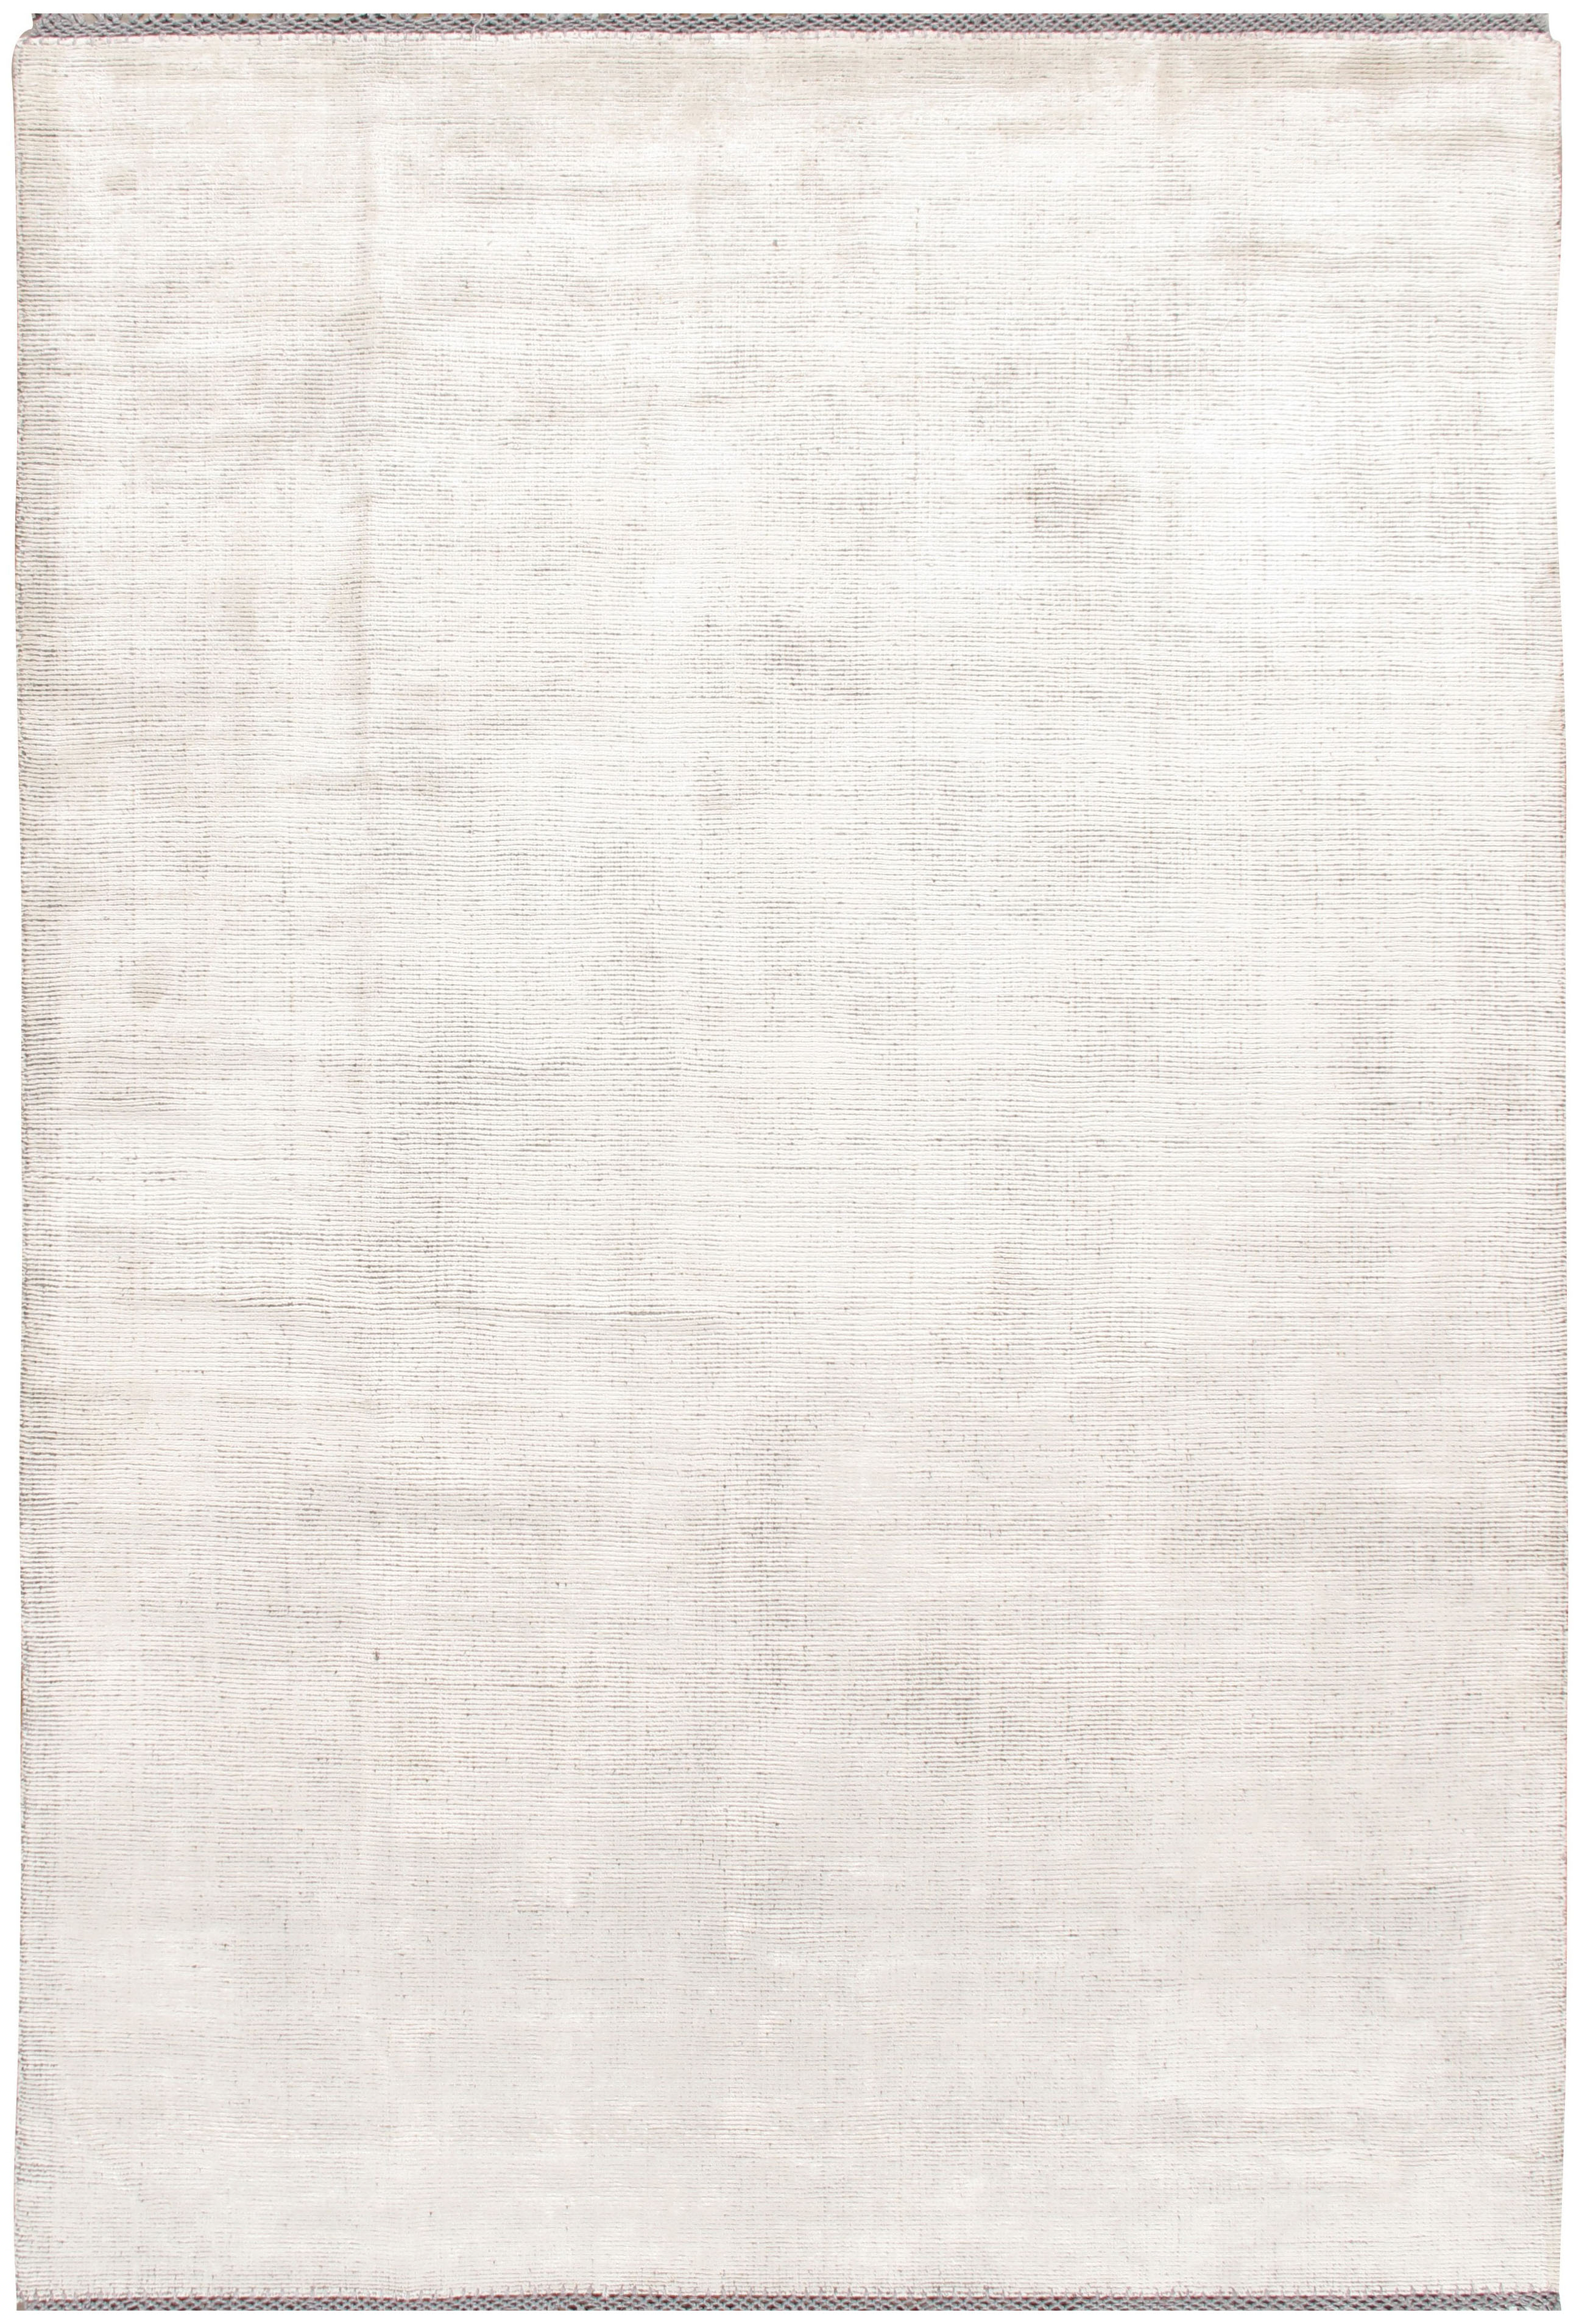 Simplicity Chic Ivory Gray Rug